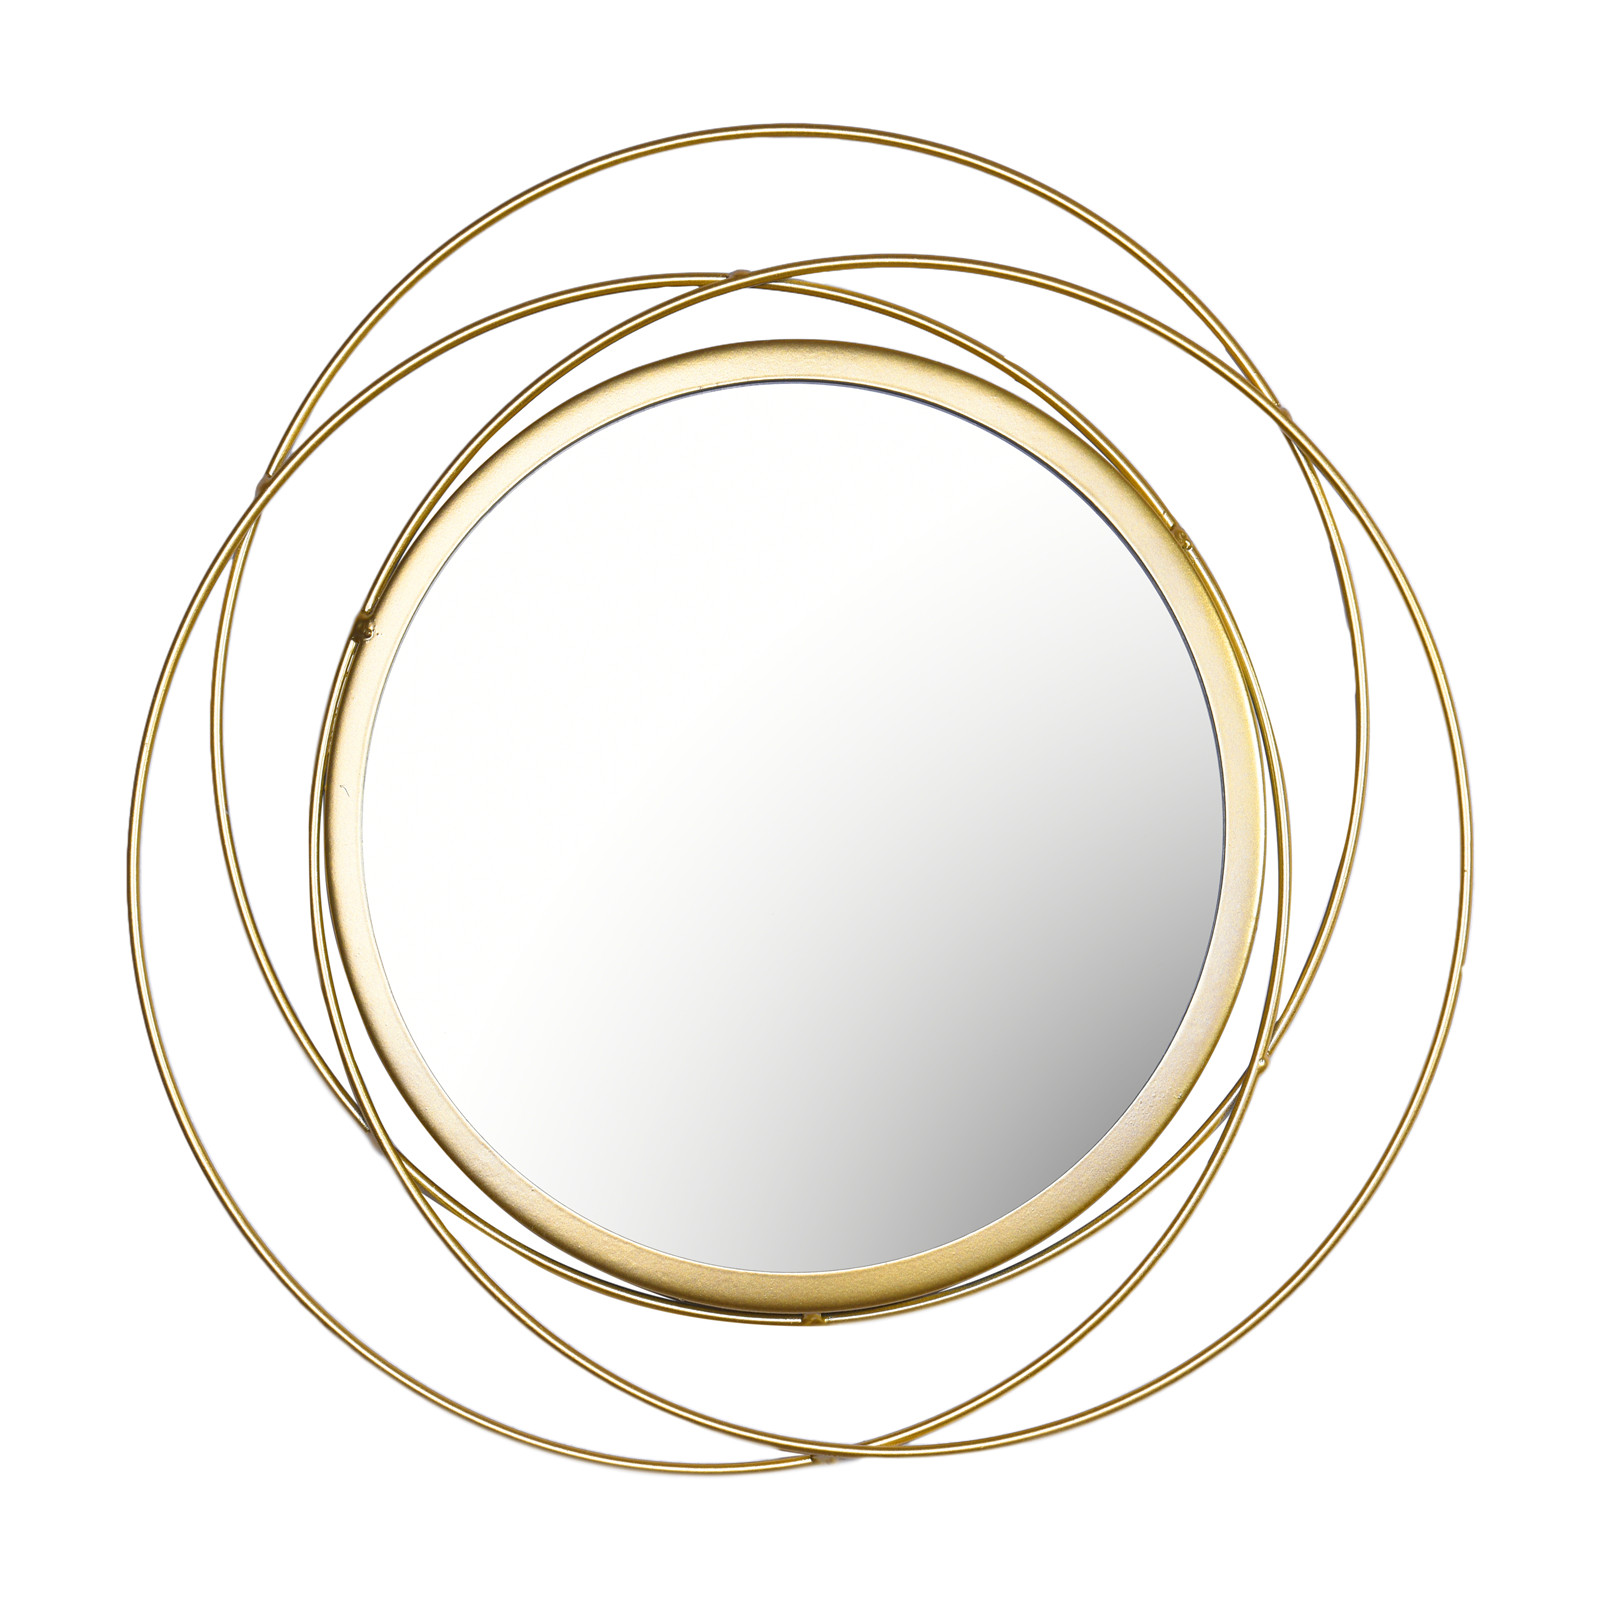 Home Decor Wall Mirror Hanging Geometric Classic Gold Metal Makeup For Party Wedding Gift Bedroom Bath Room Decorative 2021 New